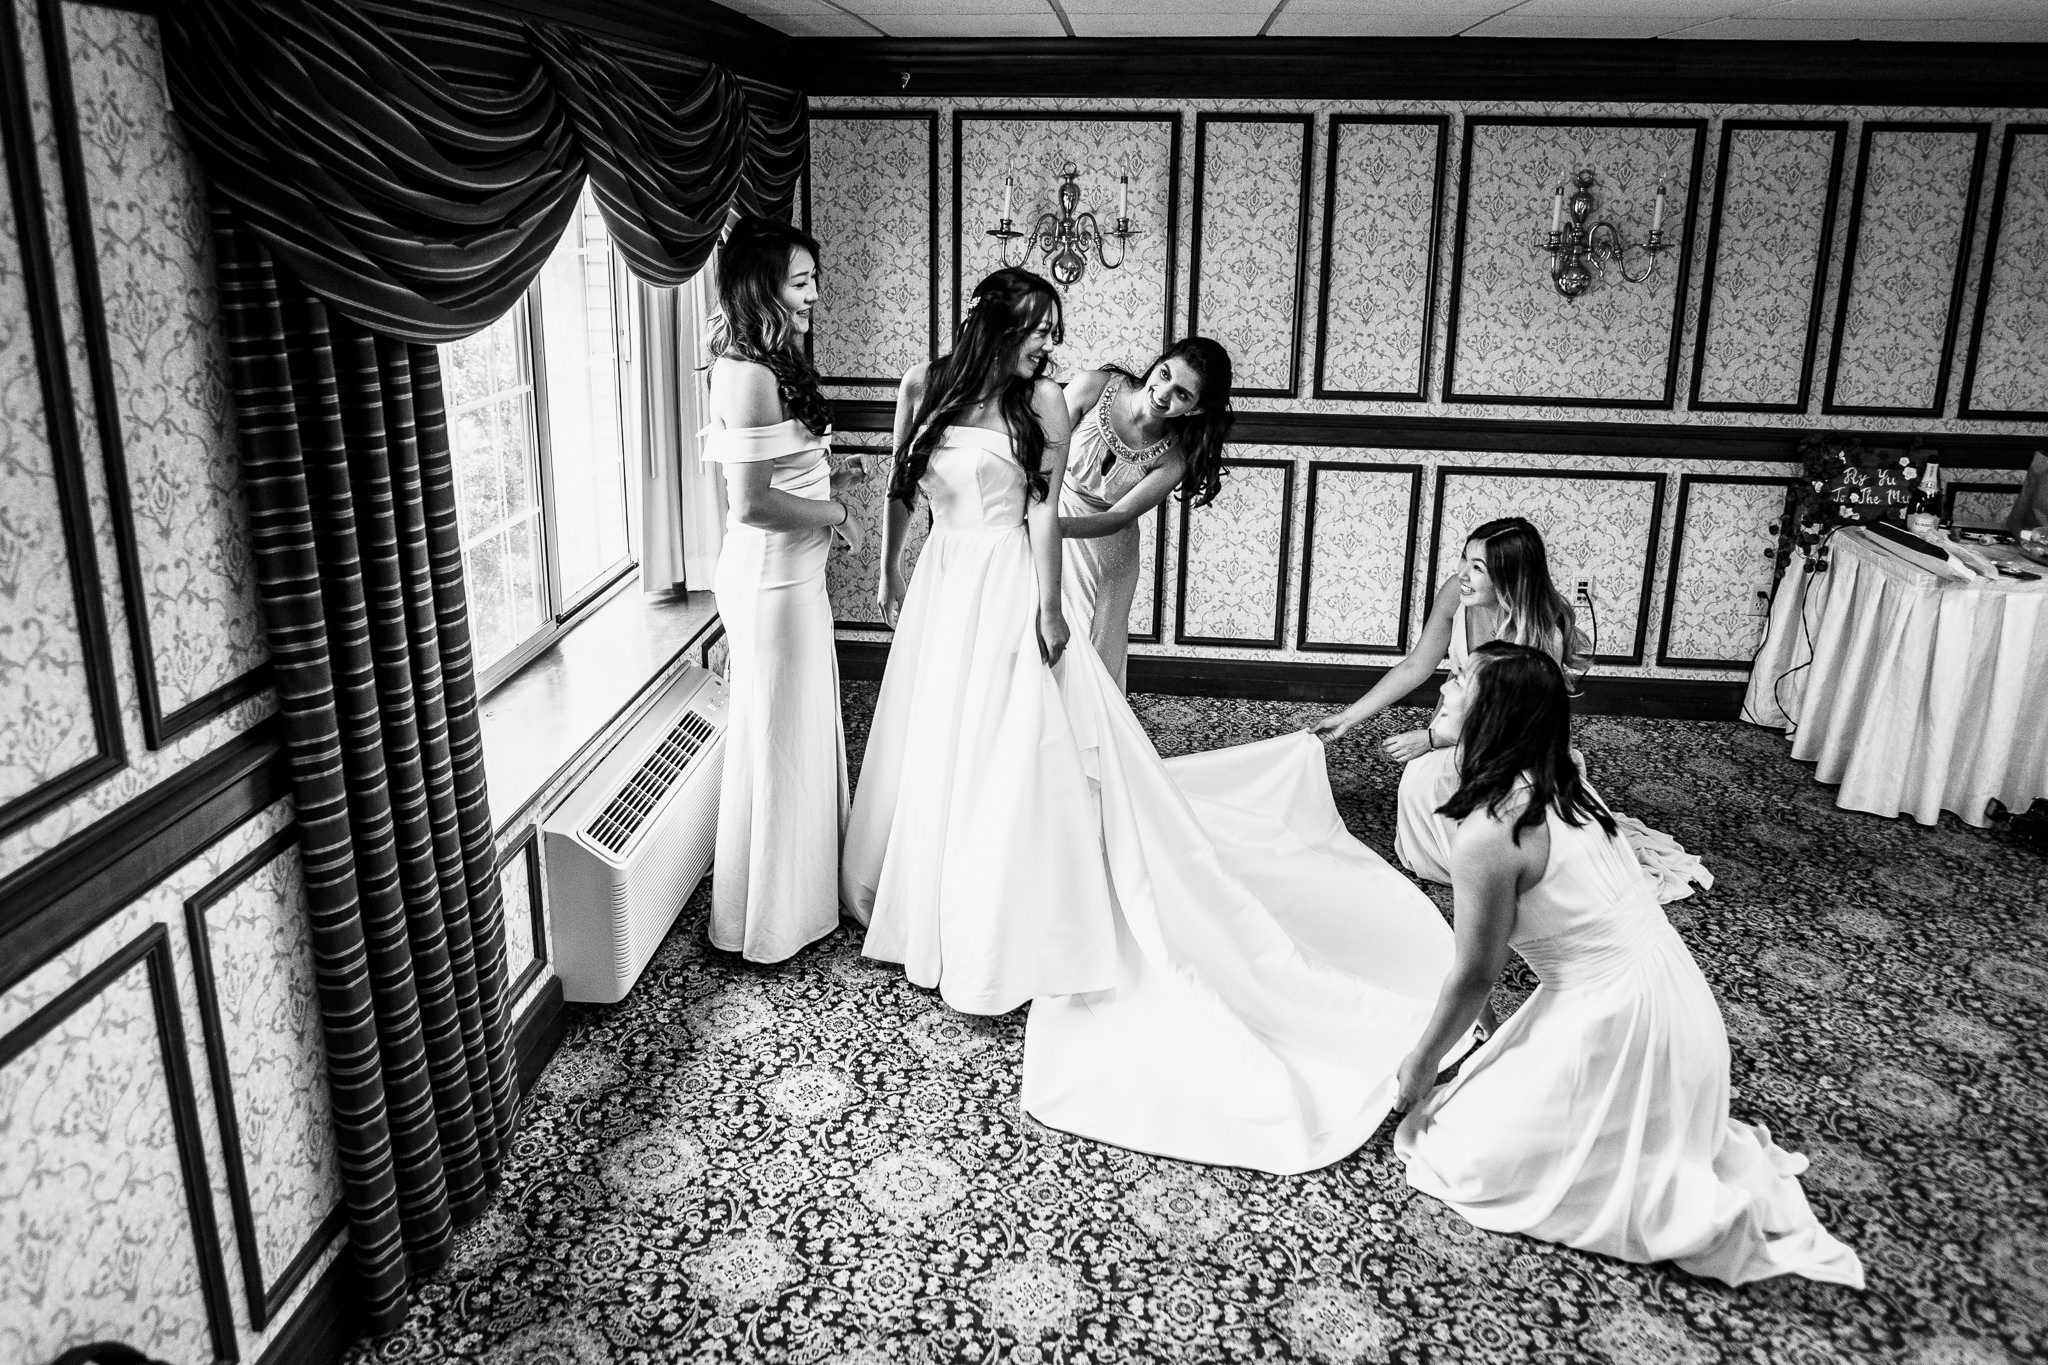 Kim-The-Madison-Hotel-Morristown-New-Jersey-Wedding-Photographer-05.JPG